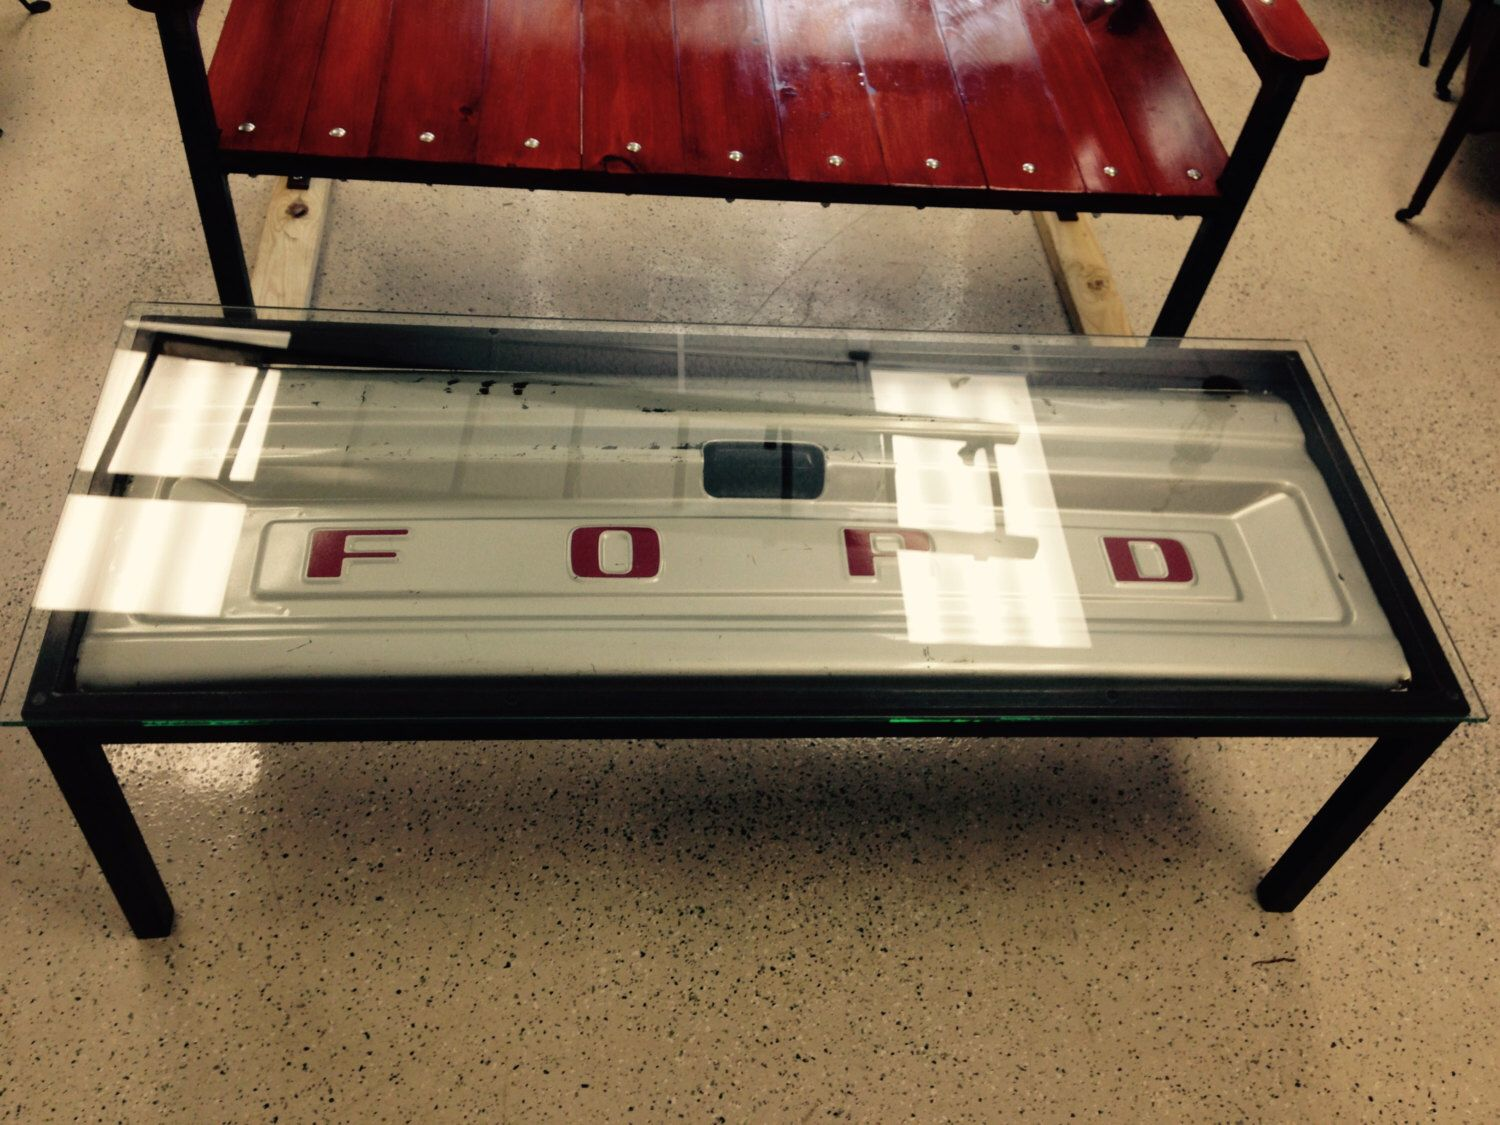 Ford Tailgate Coffee Table By Antiquerescuellc On Etsy Https Www